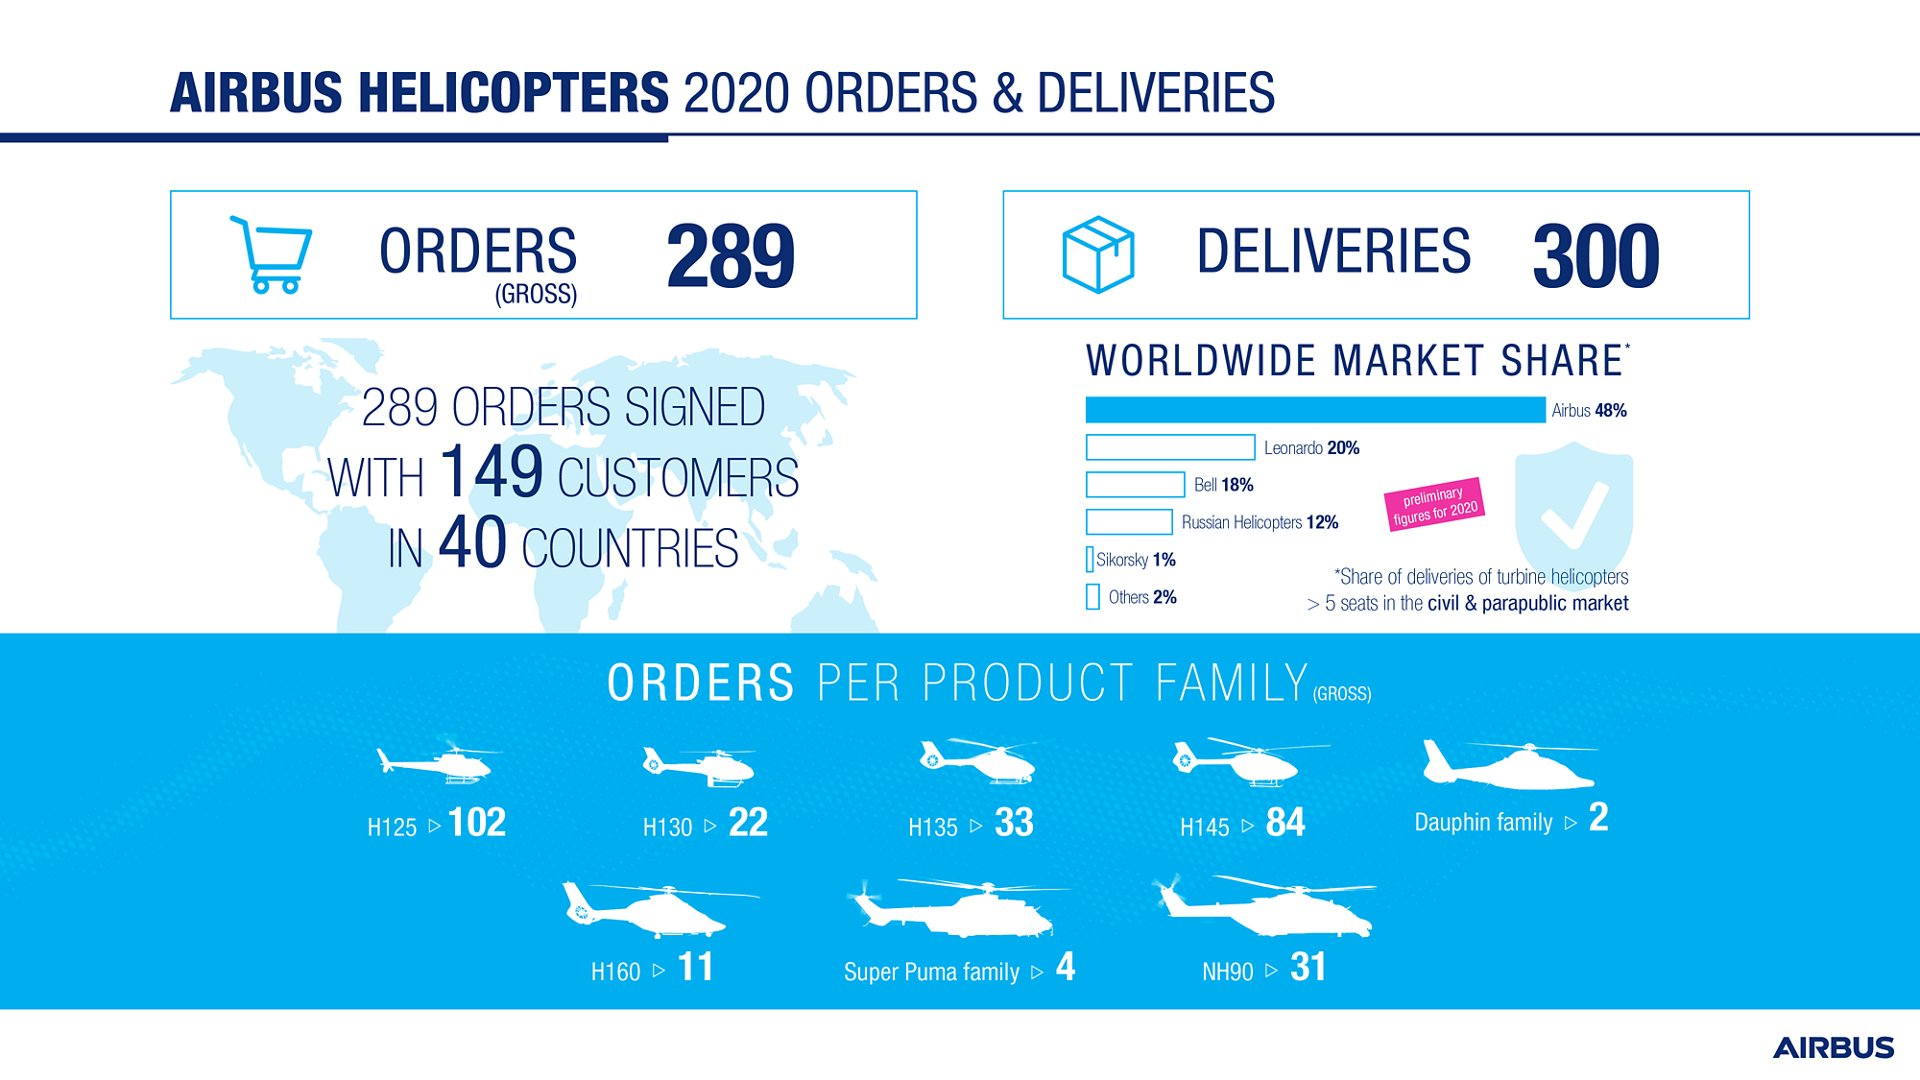 In 2020, Airbus Helicopters logged 289 gross orders (net: 268) in a challenging market heavily impacted by the economic consequences of the COVID-19 pandemic, reinforcing the company's position on the civil and parapublic market.